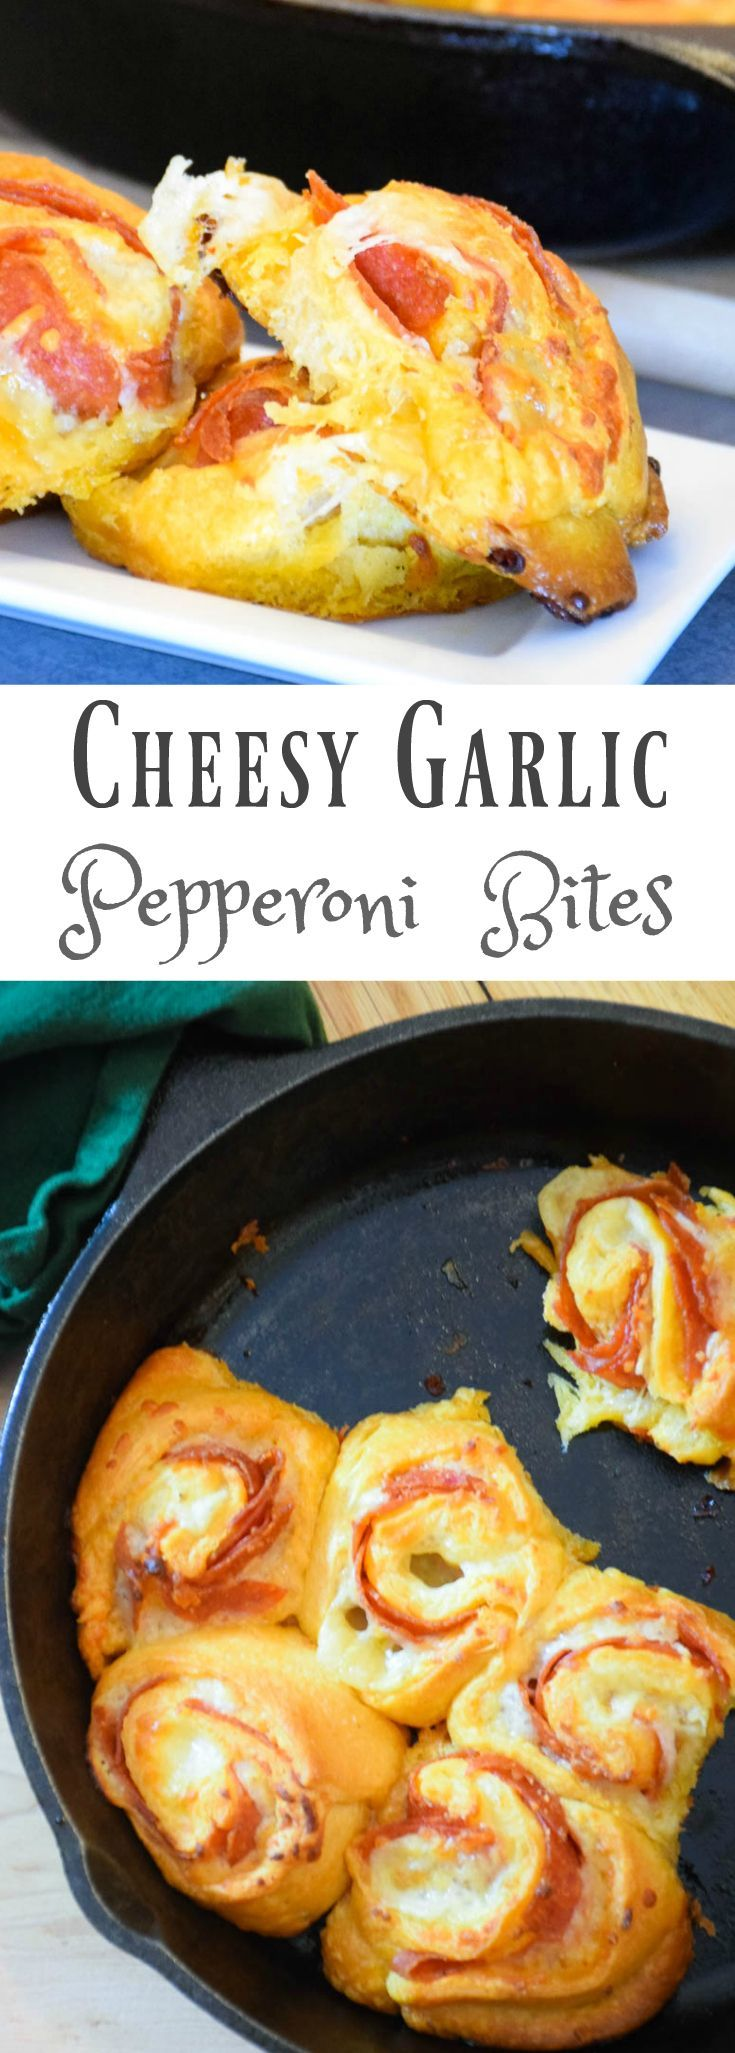 Cheesy Garlic Pepperoni Bites - easy to make and full of flavor! Make these for your next appetizer party! #MoreMomentsWithExcedrin #ad #collectivebias